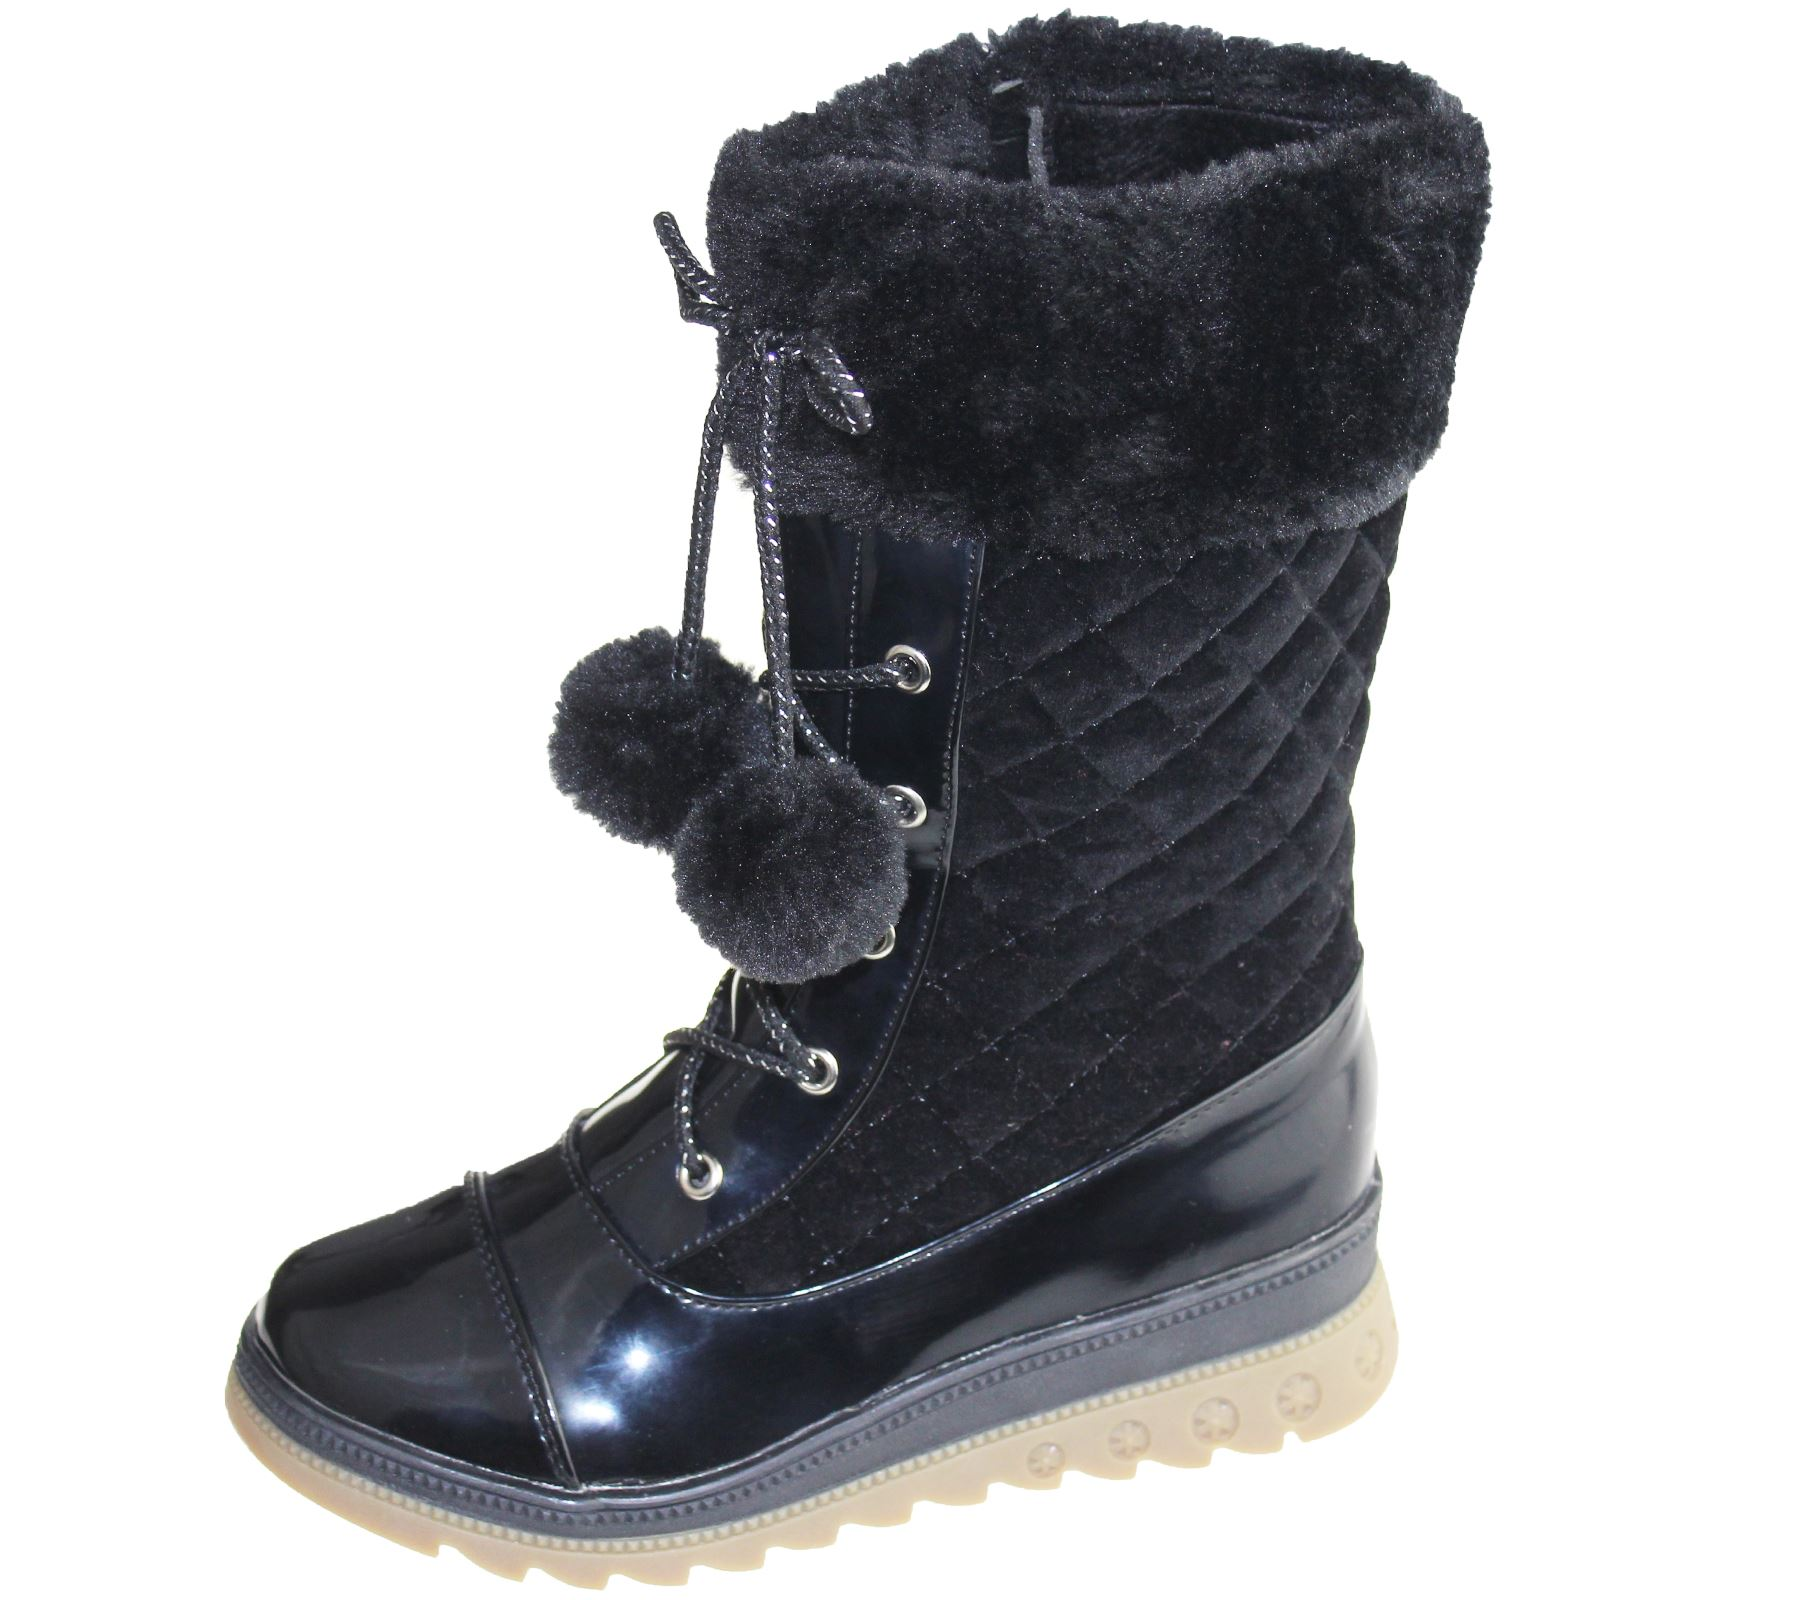 Girls Warm Lined Boots Quilted Winter Warm Christmas High Top School ... fdeb5eaacfd8